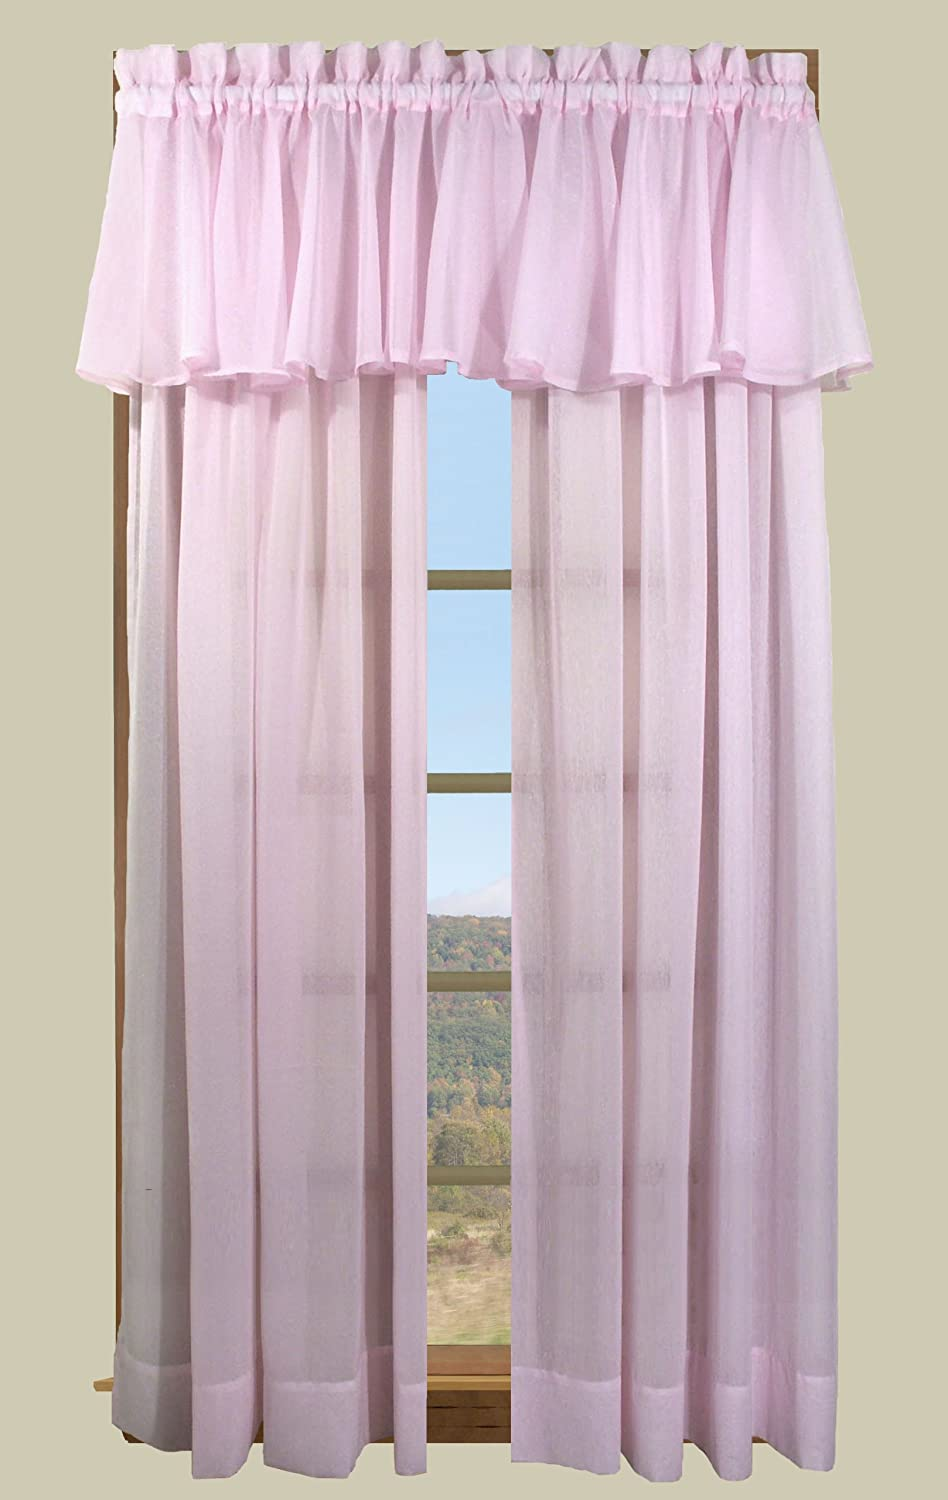 55 by 54-Inch White Ricardo Trading Sea Glass Tailored Curtain Panel